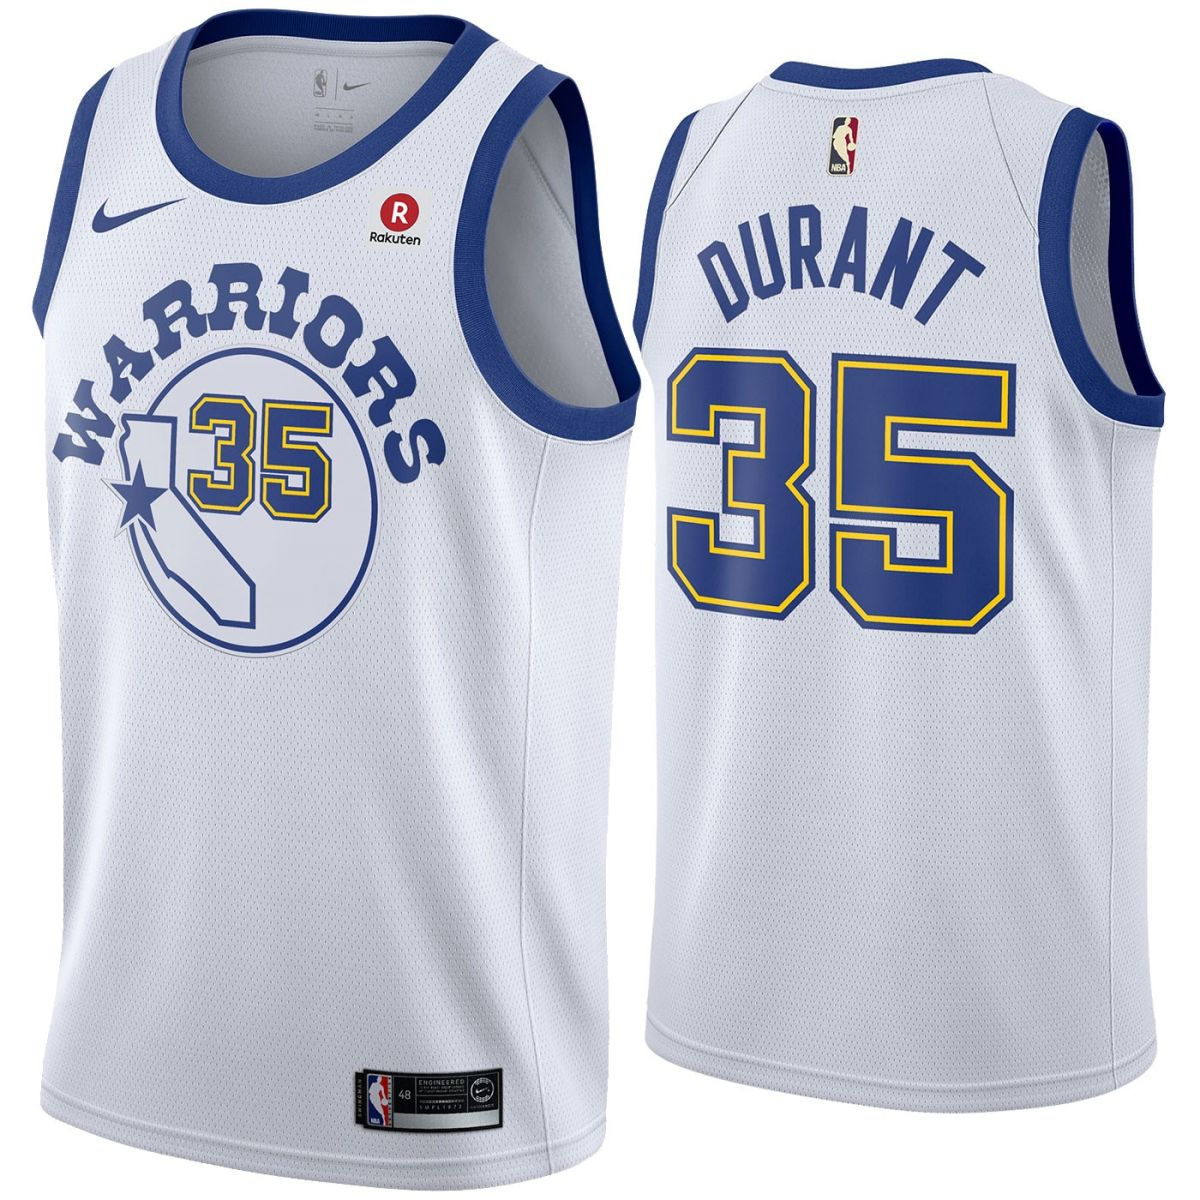 info for 9225c 16bf0 Auction Page | Kevin Durant Autographed Warriors Jersey ...